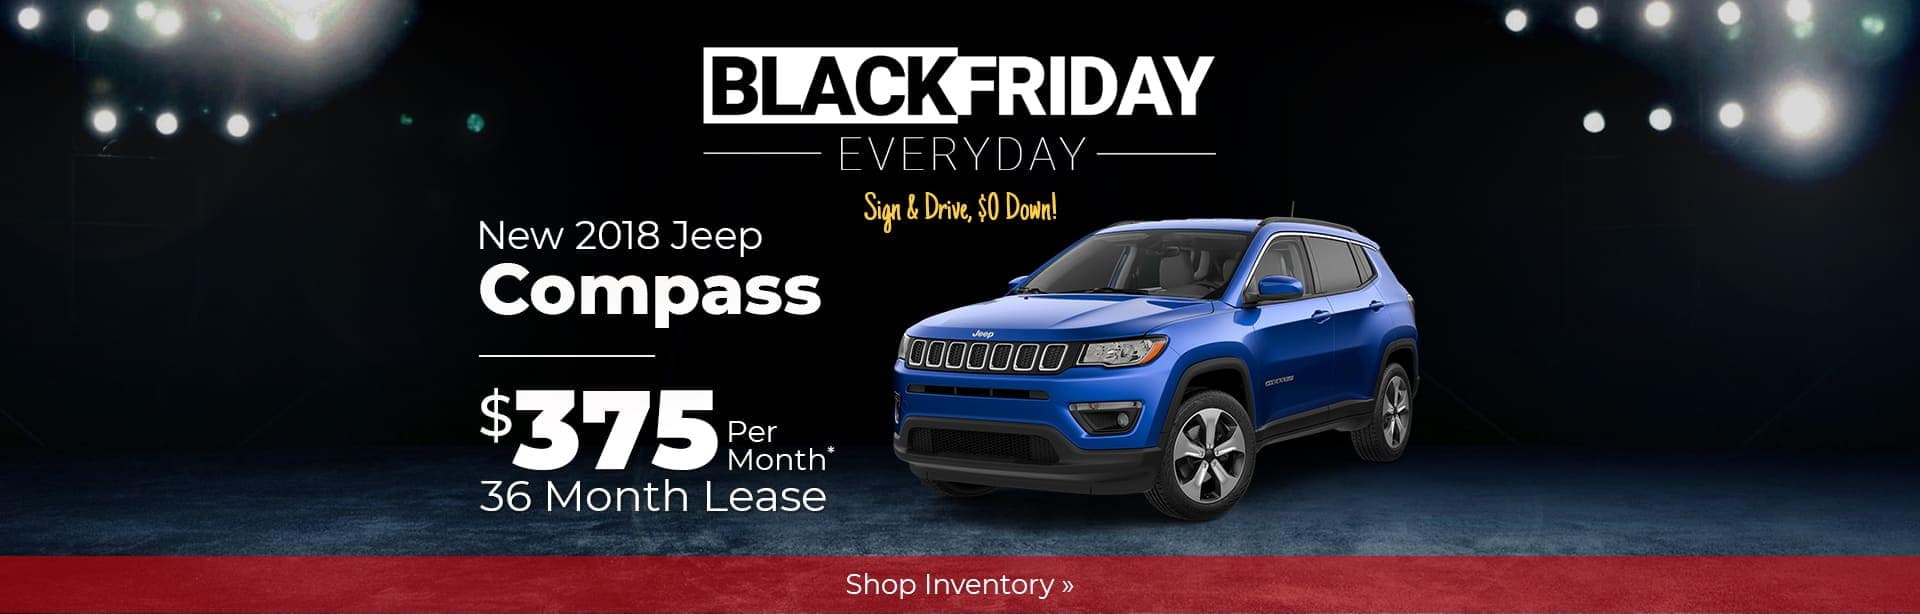 2018 Jeep Compass Black Friday Lease Special Near Crawfordsville, Indiana